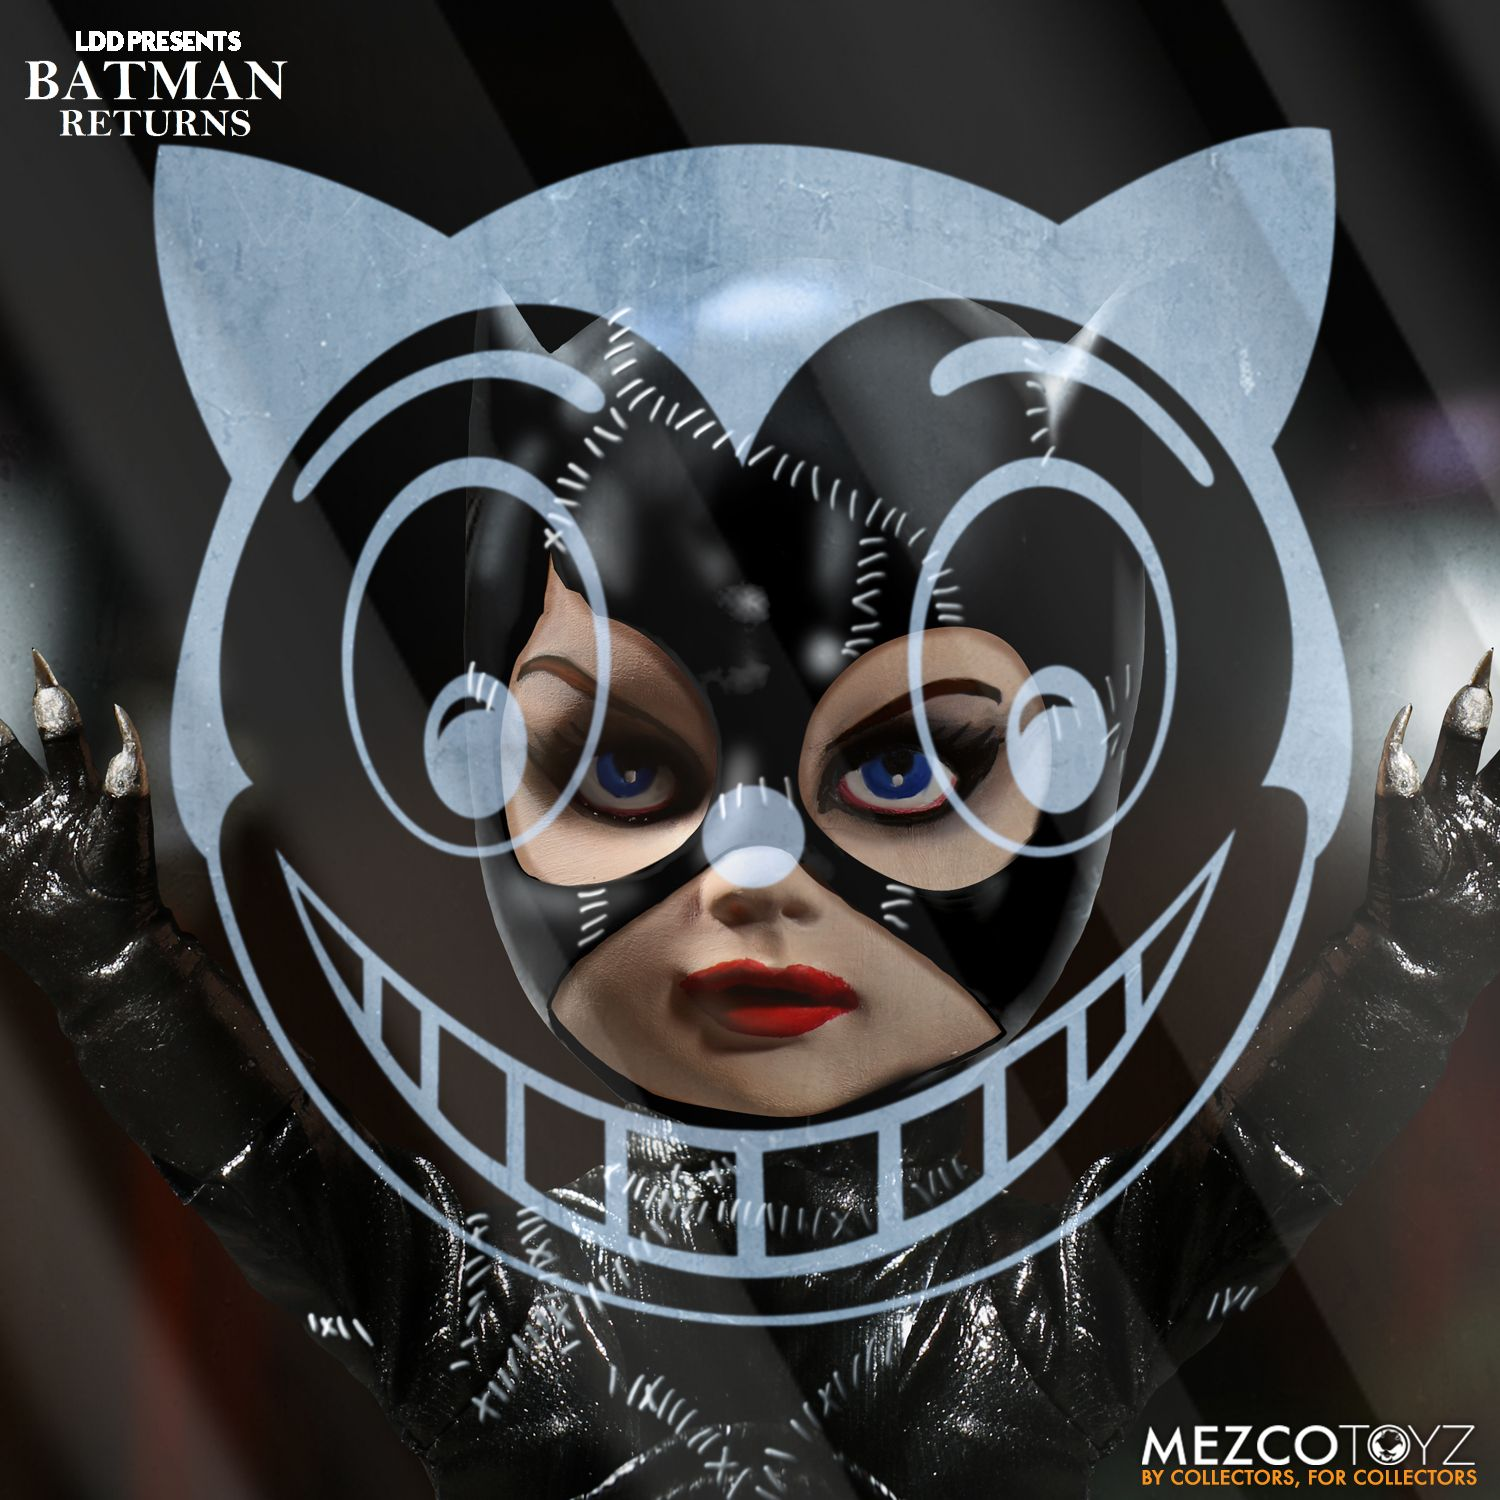 Catwoman Living Dead Dolls LDD Presents Mezco Batman Returns